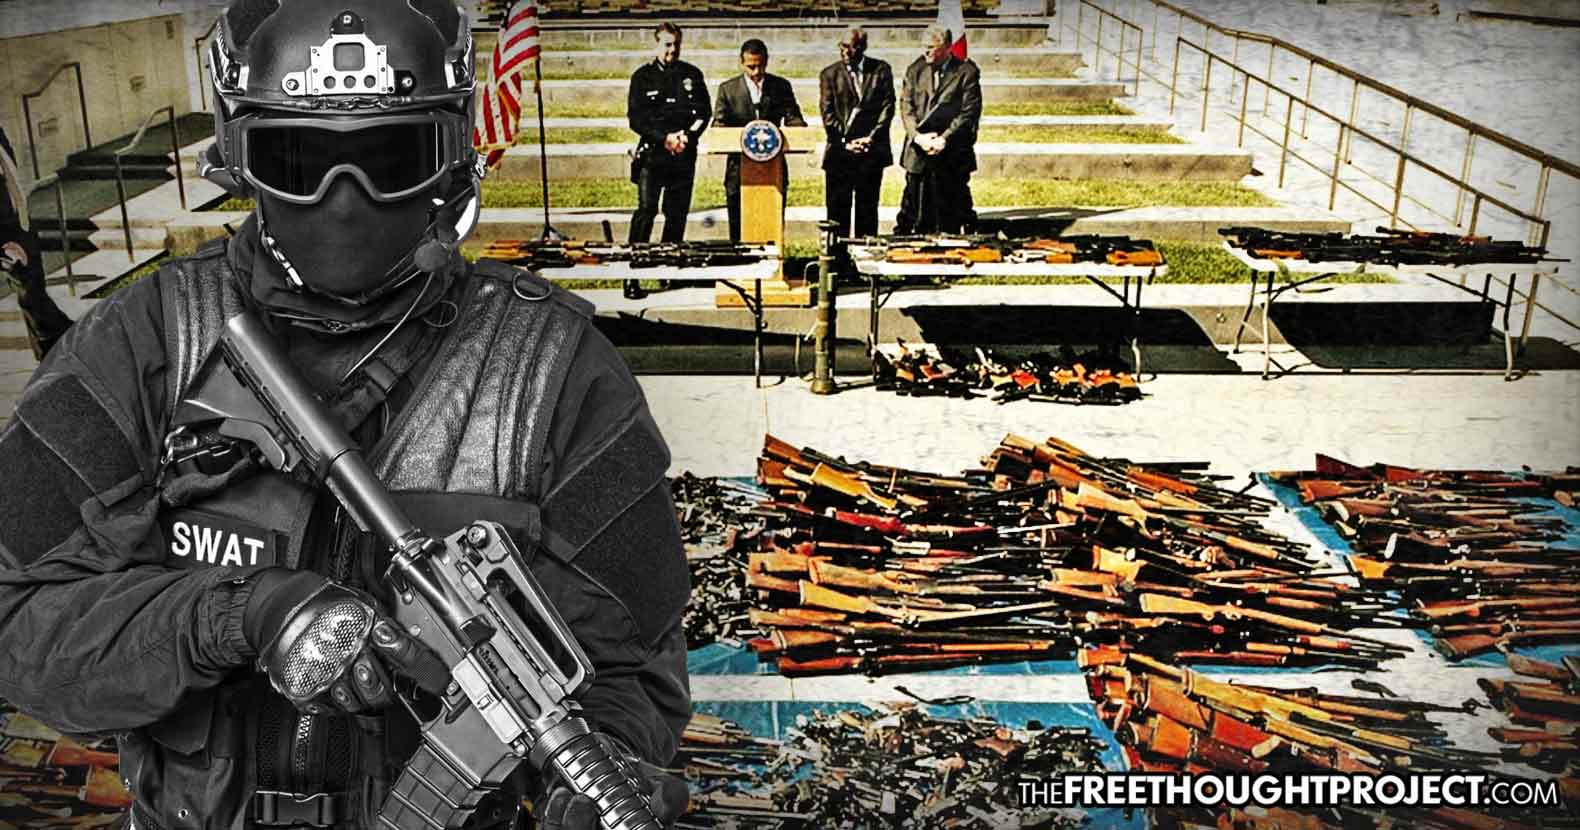 """New Jersey: Nearly 200 Citizens' Guns Seized Under Red Flag """"Laws"""" In 4 Months - Many Of Them Permanently - Guns in the News"""